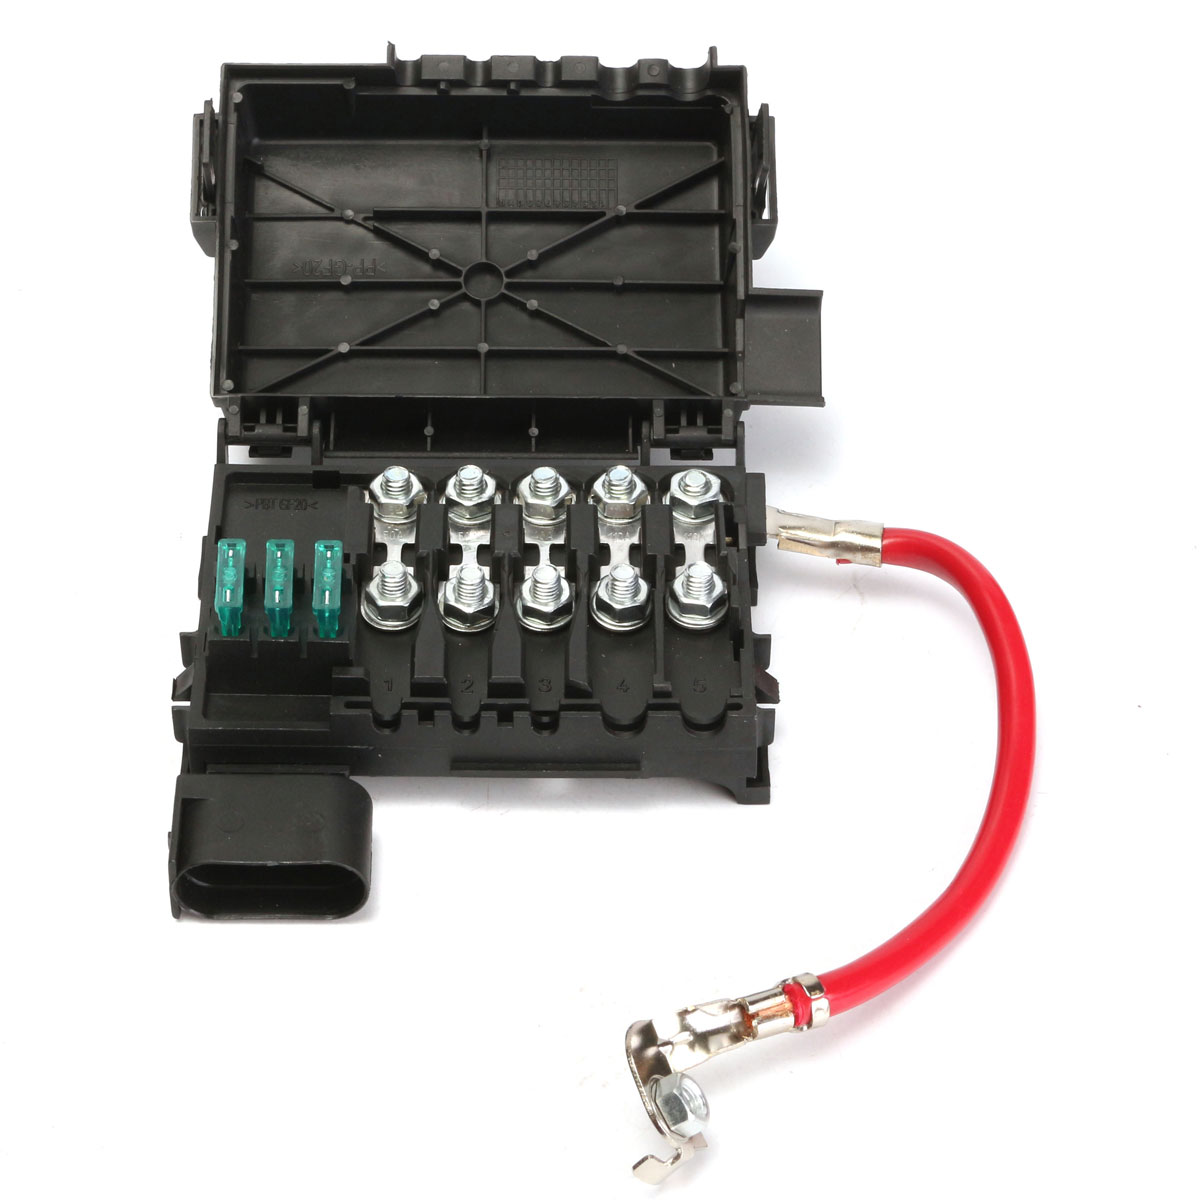 Fuse Box Battery Terminal Insurance Tablets For Vw Jetta Golf Mk4 19992004  1j0937550a(